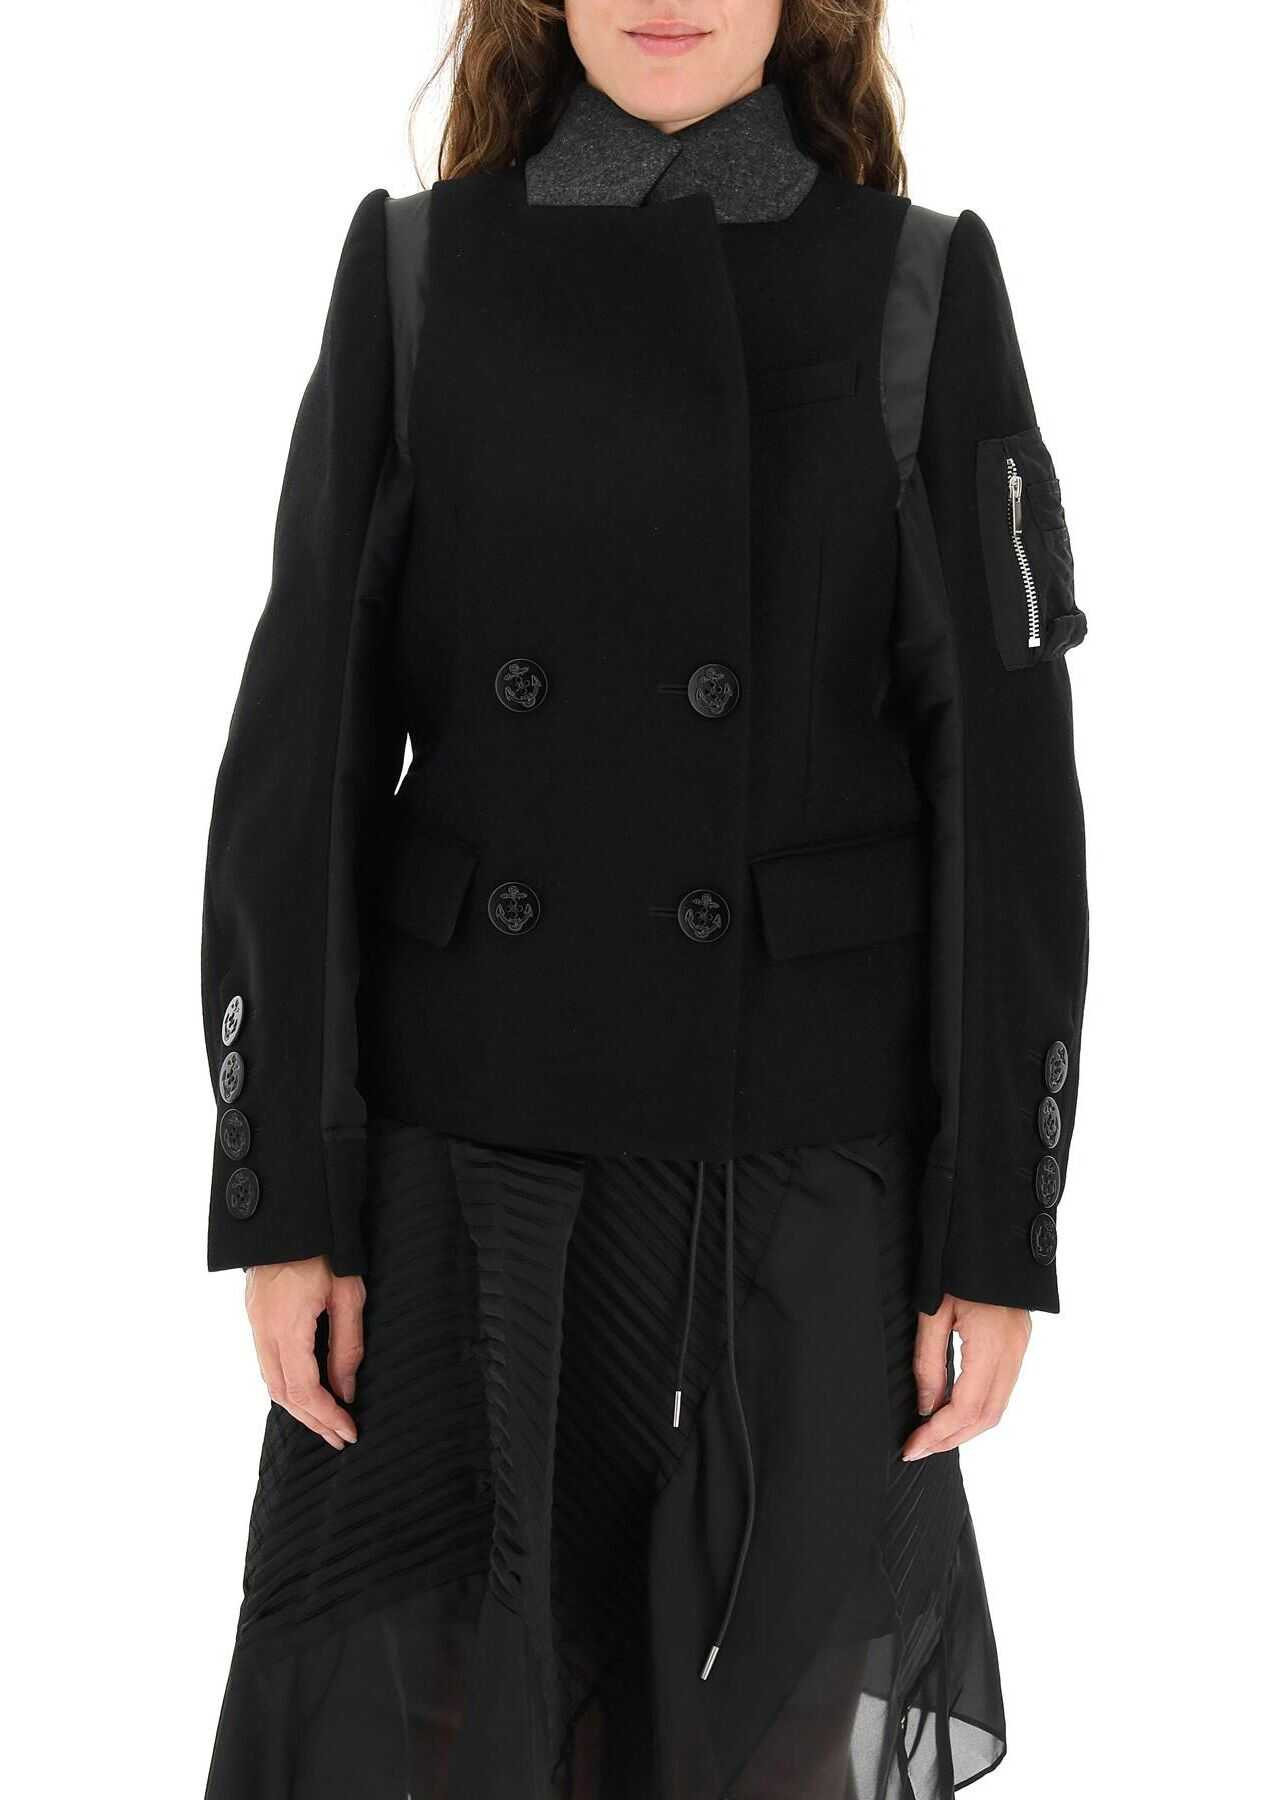 Sacai Double-Breasted Caban With Bomber Inserts 21 05837 BLACK image0